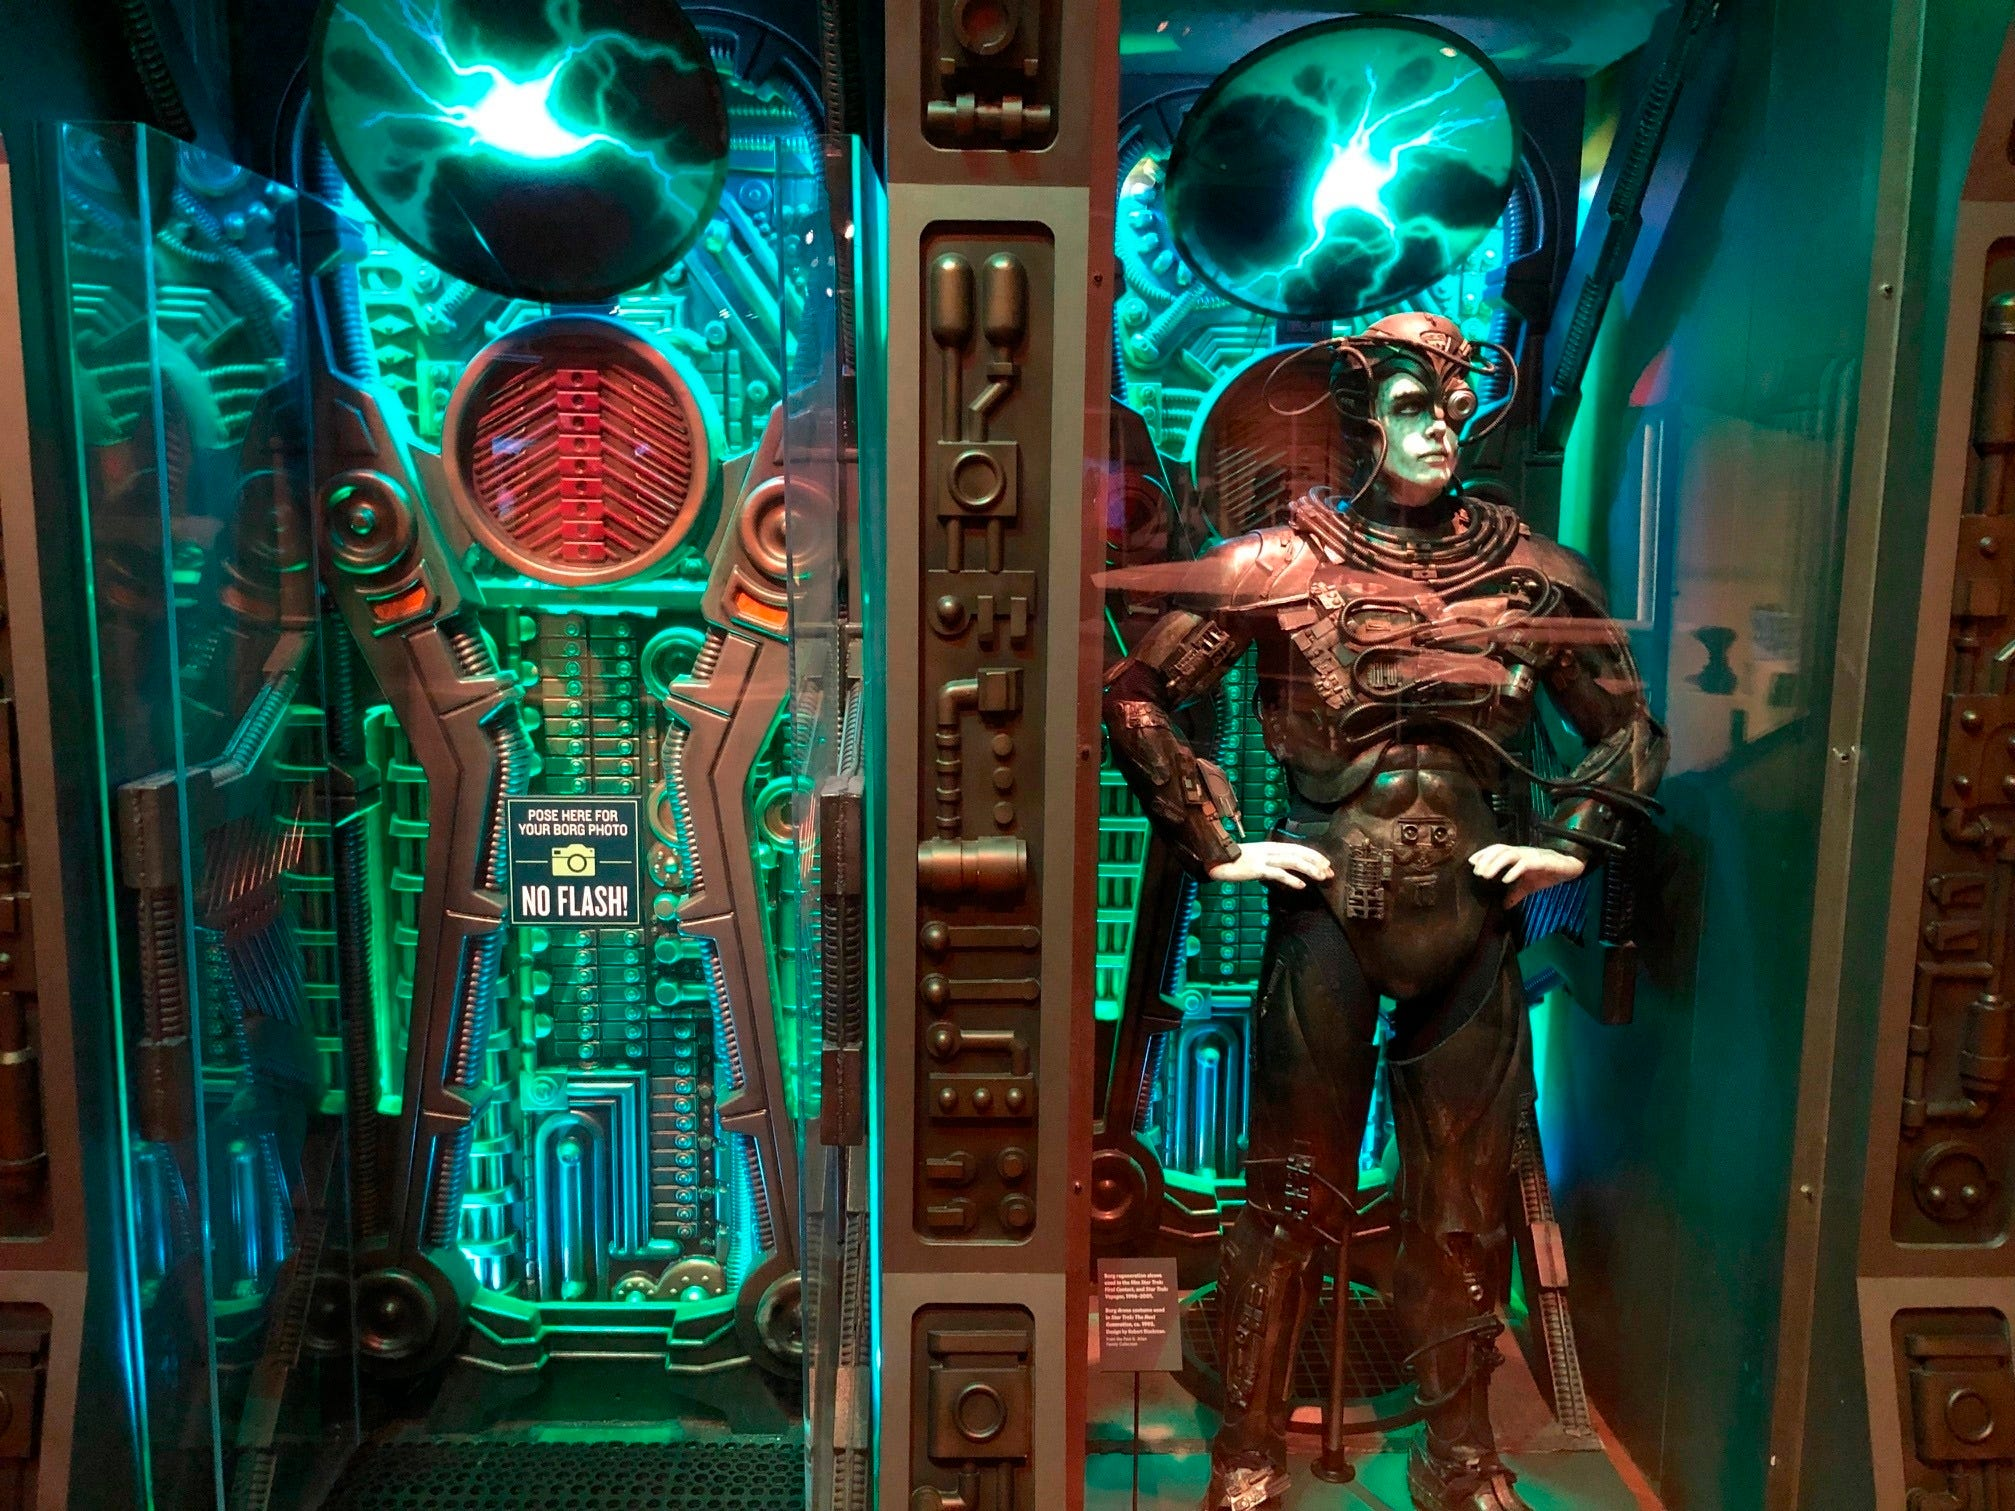 """In this May 9, 2019 photo, a Borg costume from """"Star Trek: The Next Generation"""" is displayed at the """"Star Trek: Exploring New Worlds"""" exhibit at The Henry Ford Museum in Dearborn, Mich. The traveling exhibition runs through Sept. 2 at the museum and offers a look at more than 100 artifacts and props from the original TV series and its spinoffs. It also explores its enduring impact on culture, from arts and technology to fashion and literature."""